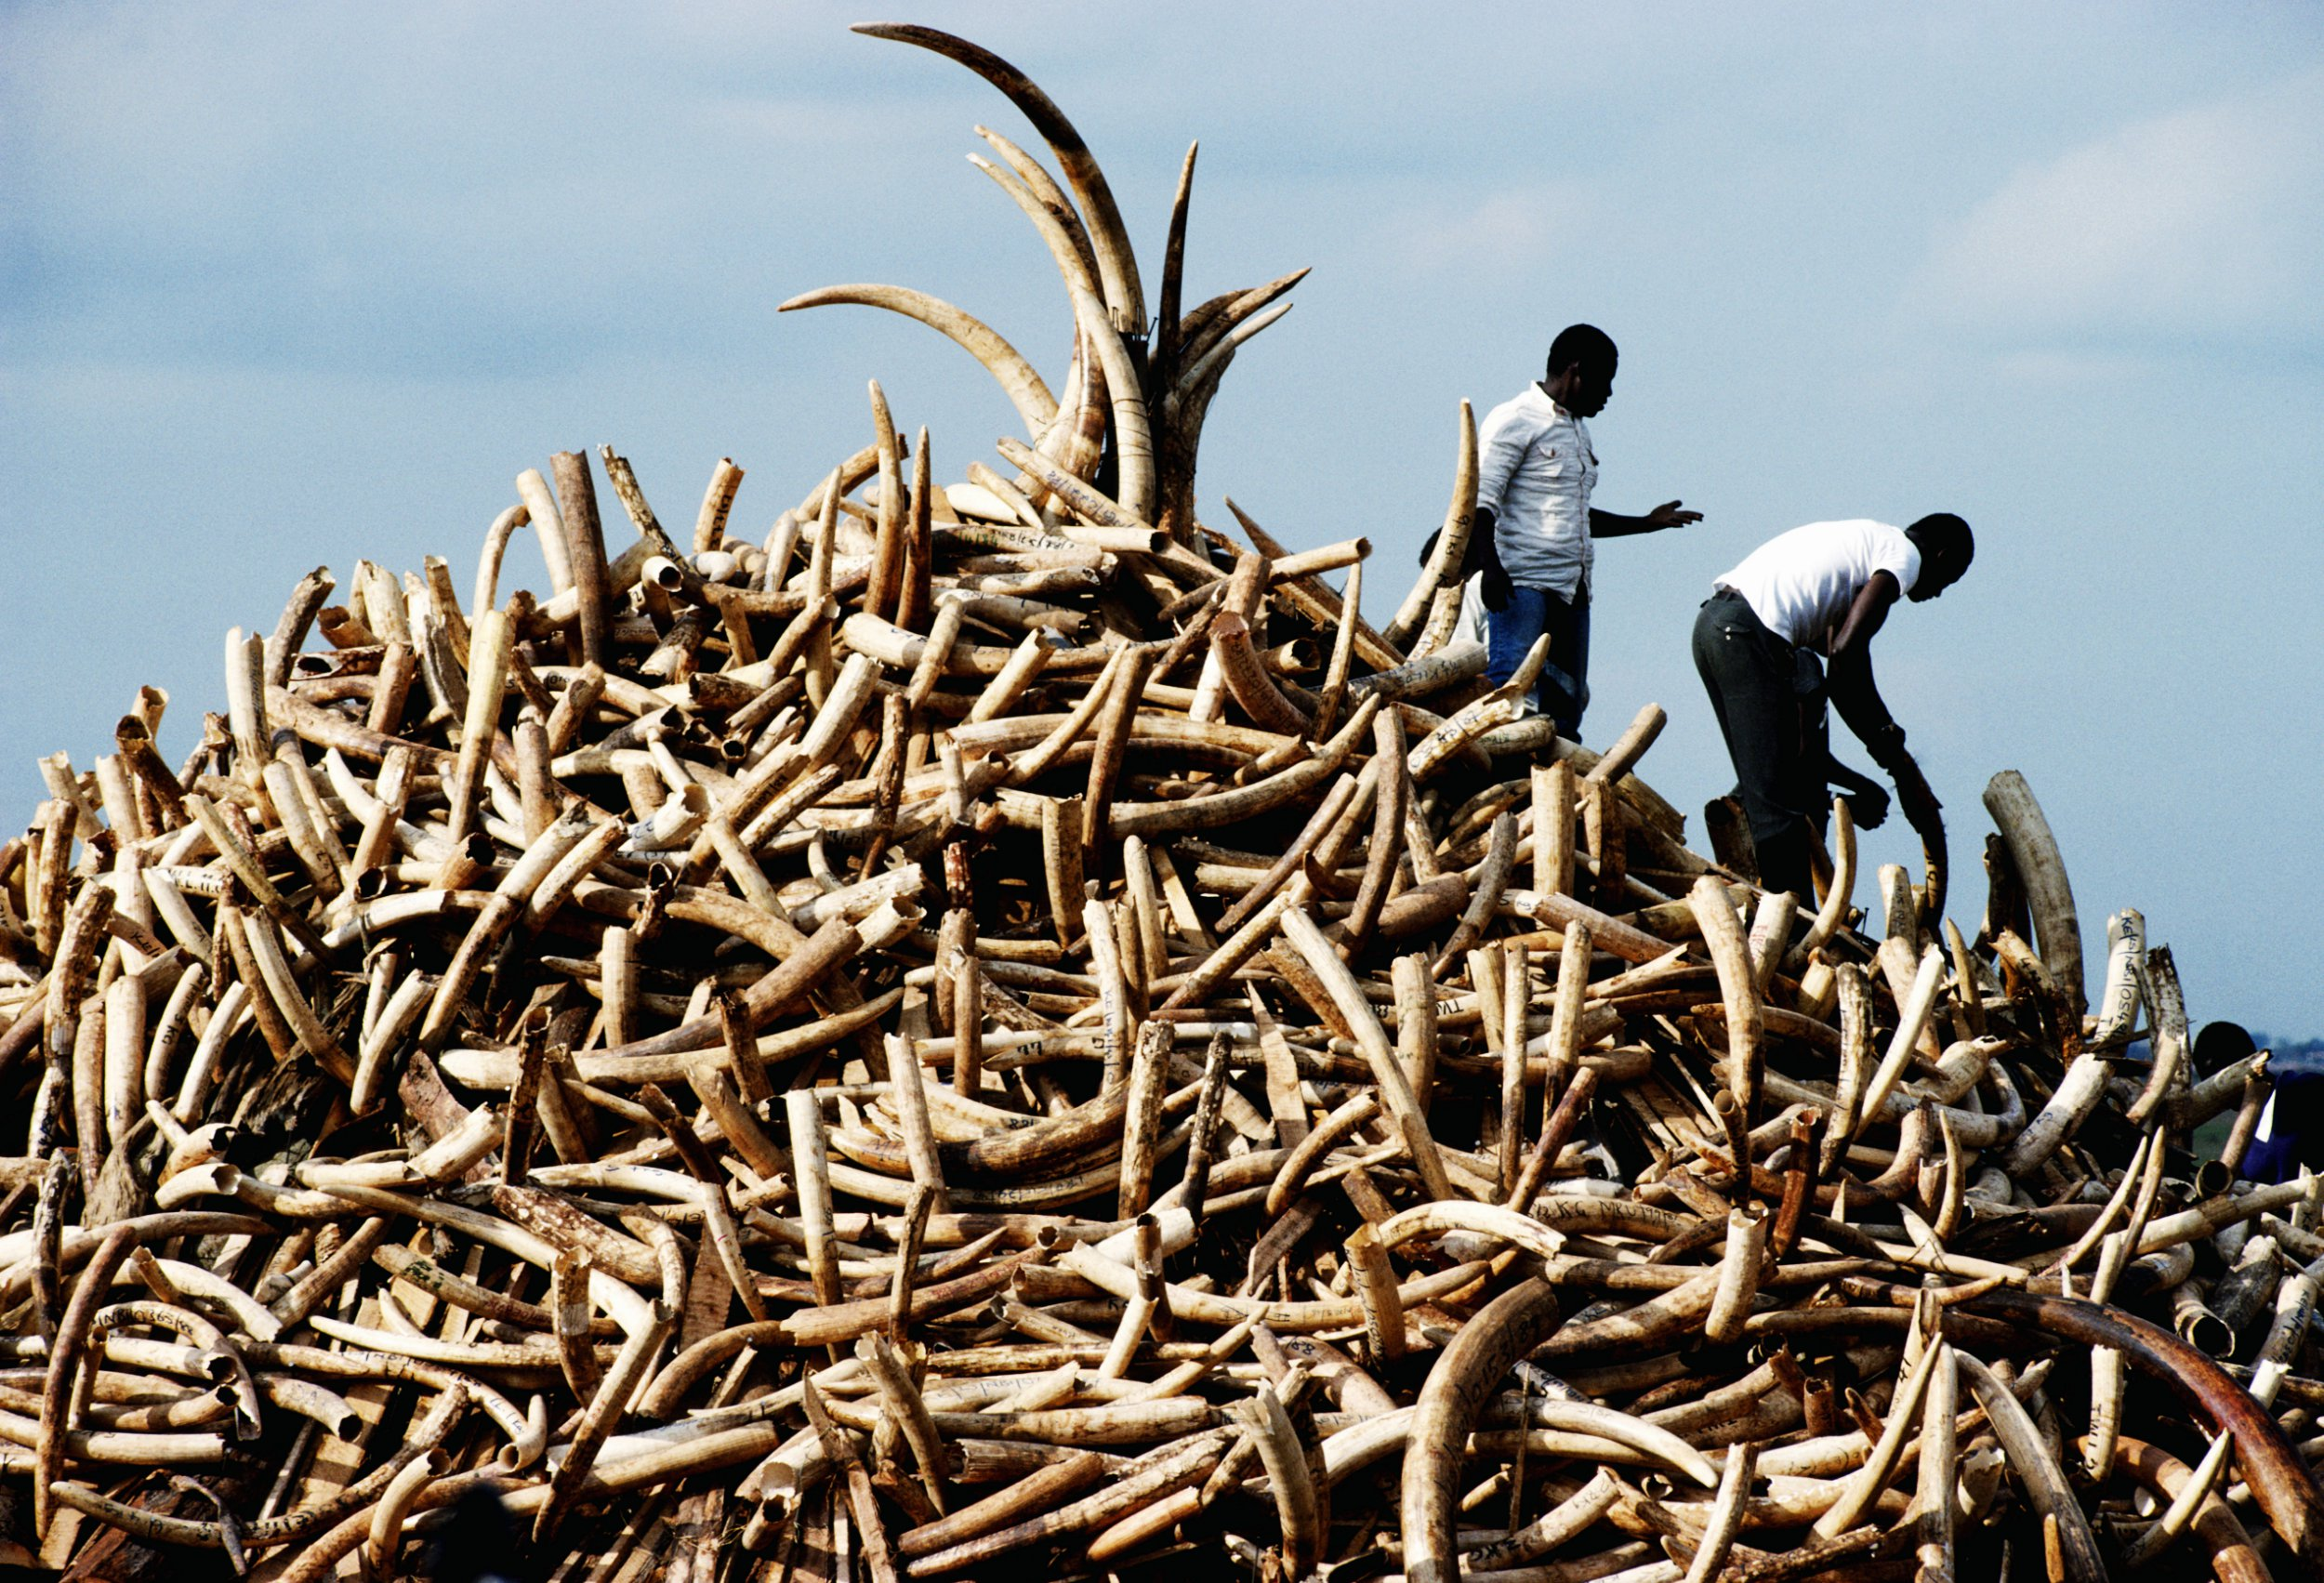 NAIROBI, KENYA - JULY 1989: A pile of ivory confiscated from poachers by Kenyan Game Wardens valued at $3 million.